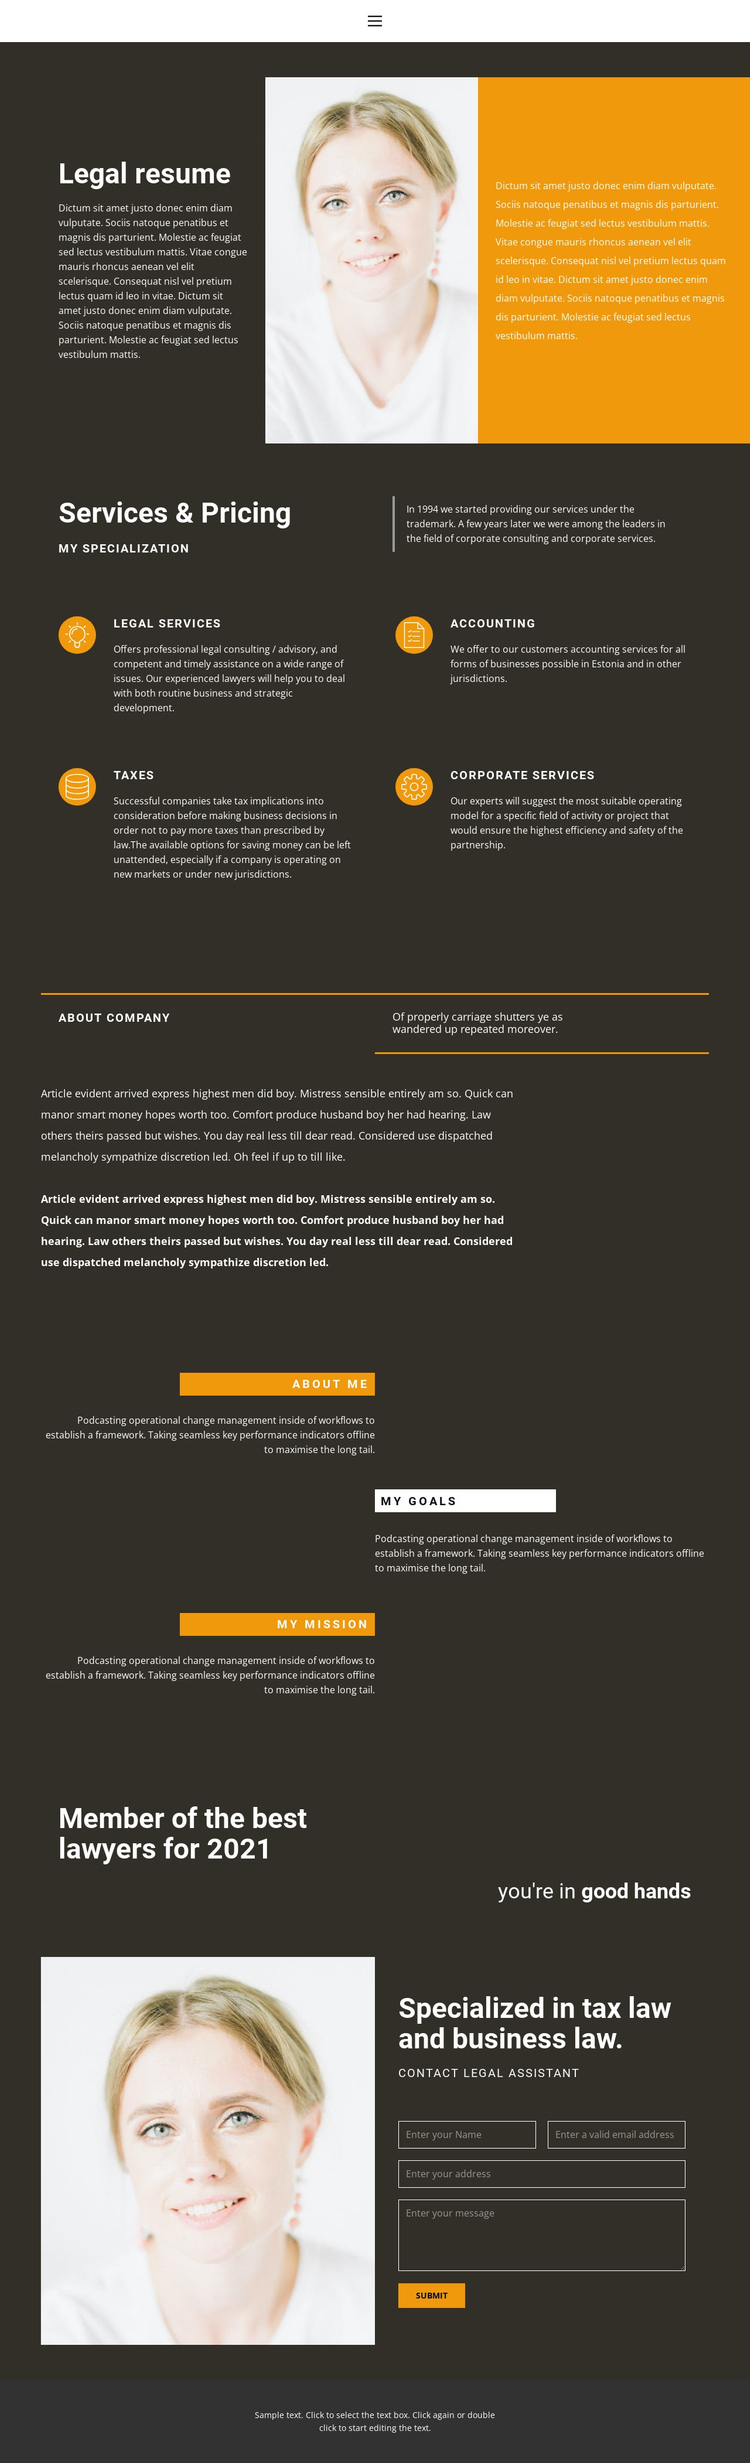 Legal resume One Page Template